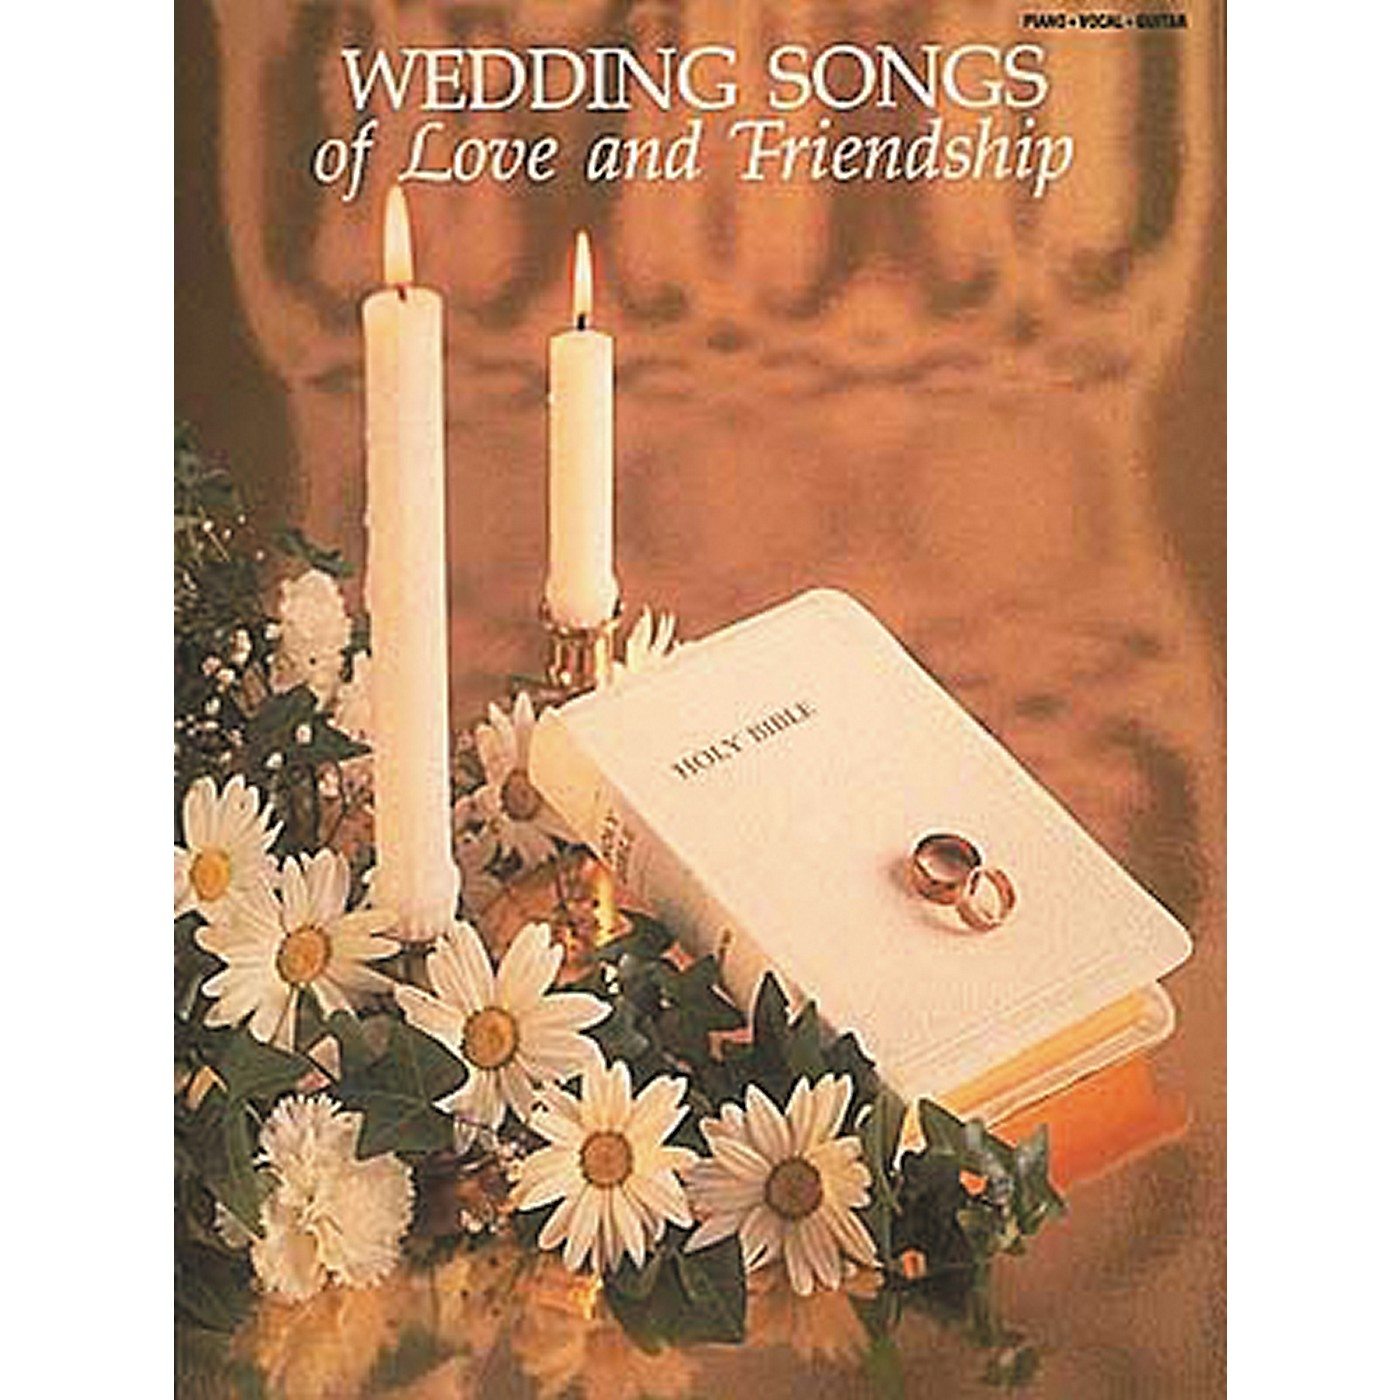 Hal Leonard Wedding Songs of Love and Friendship Piano, Vocal, Guitar Songbook thumbnail